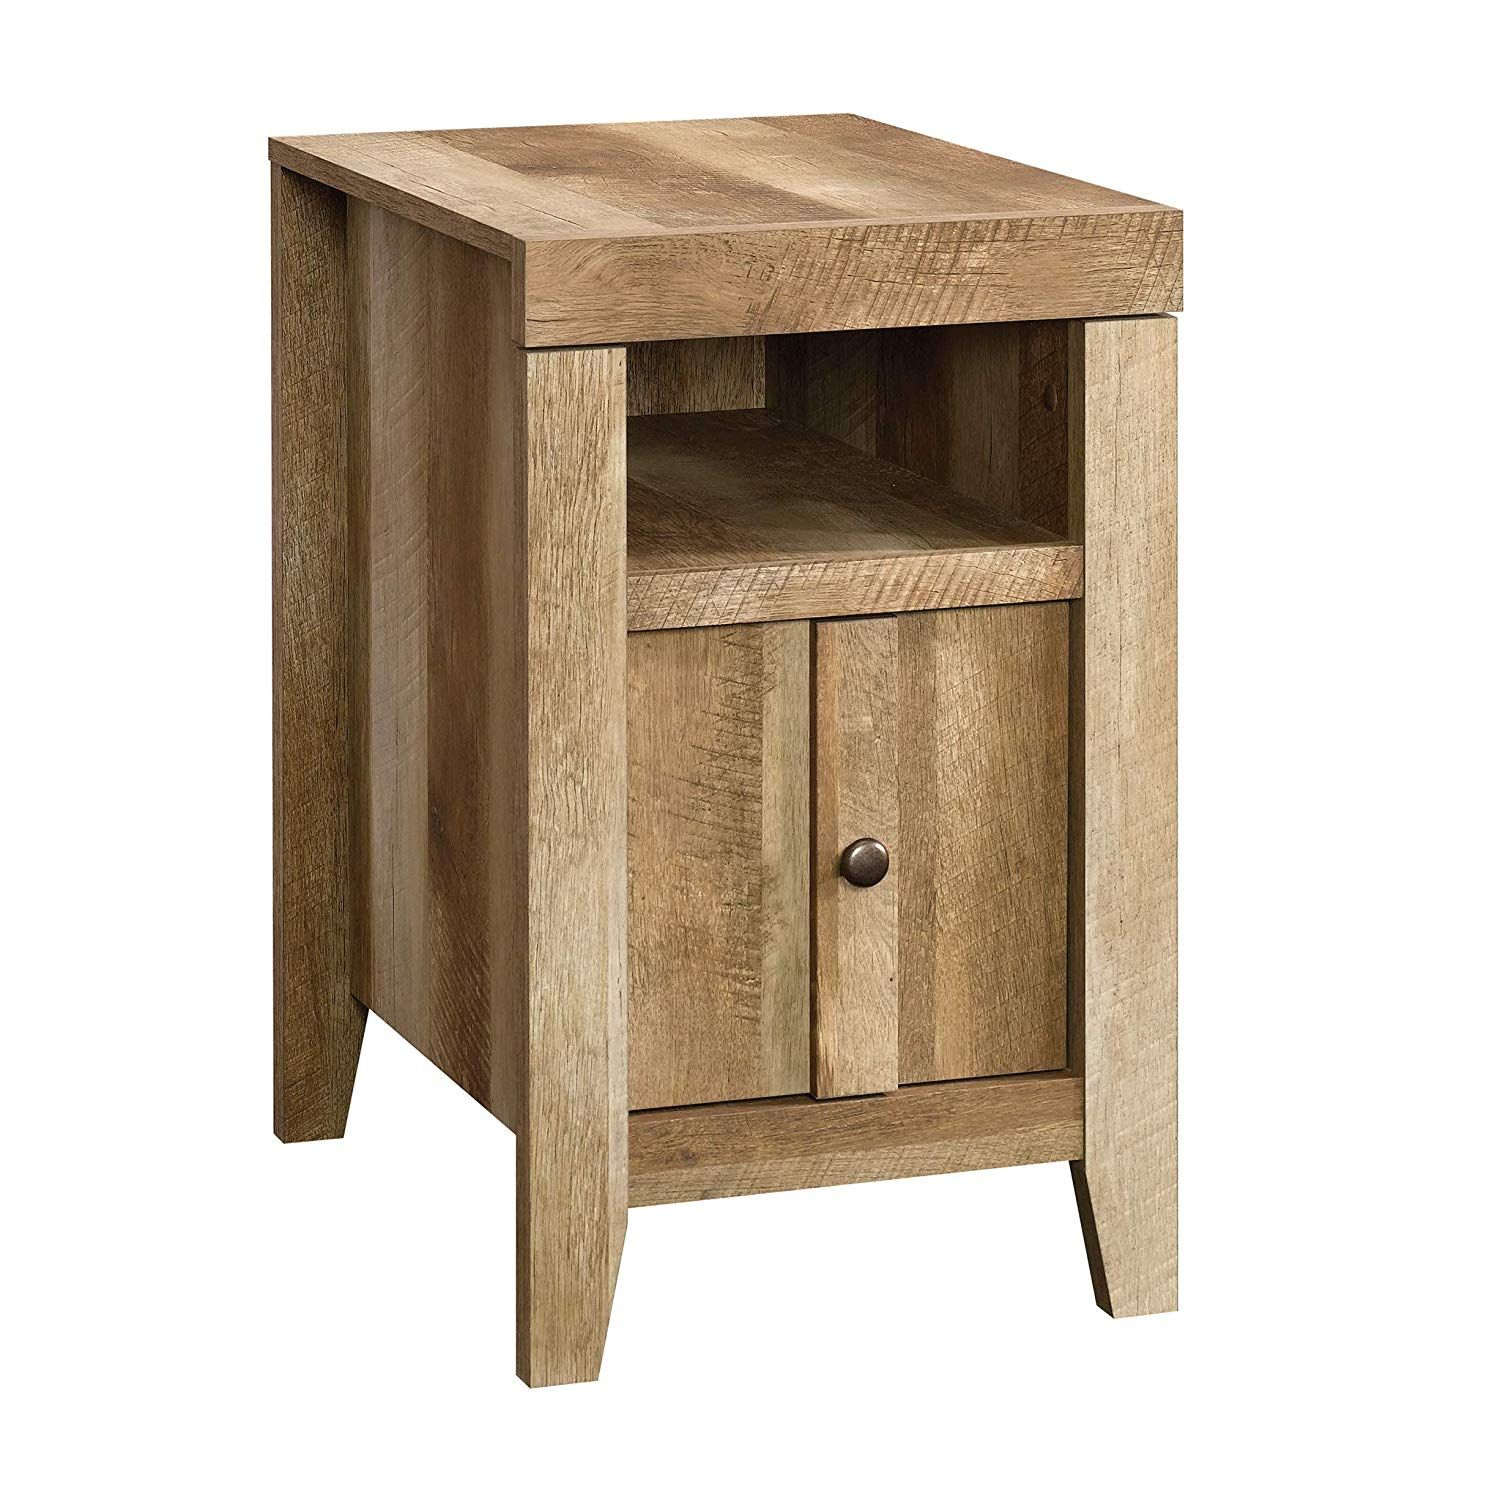 Sauder Furniture Side Table 16 535 L X 21 457 W X 26 496 H